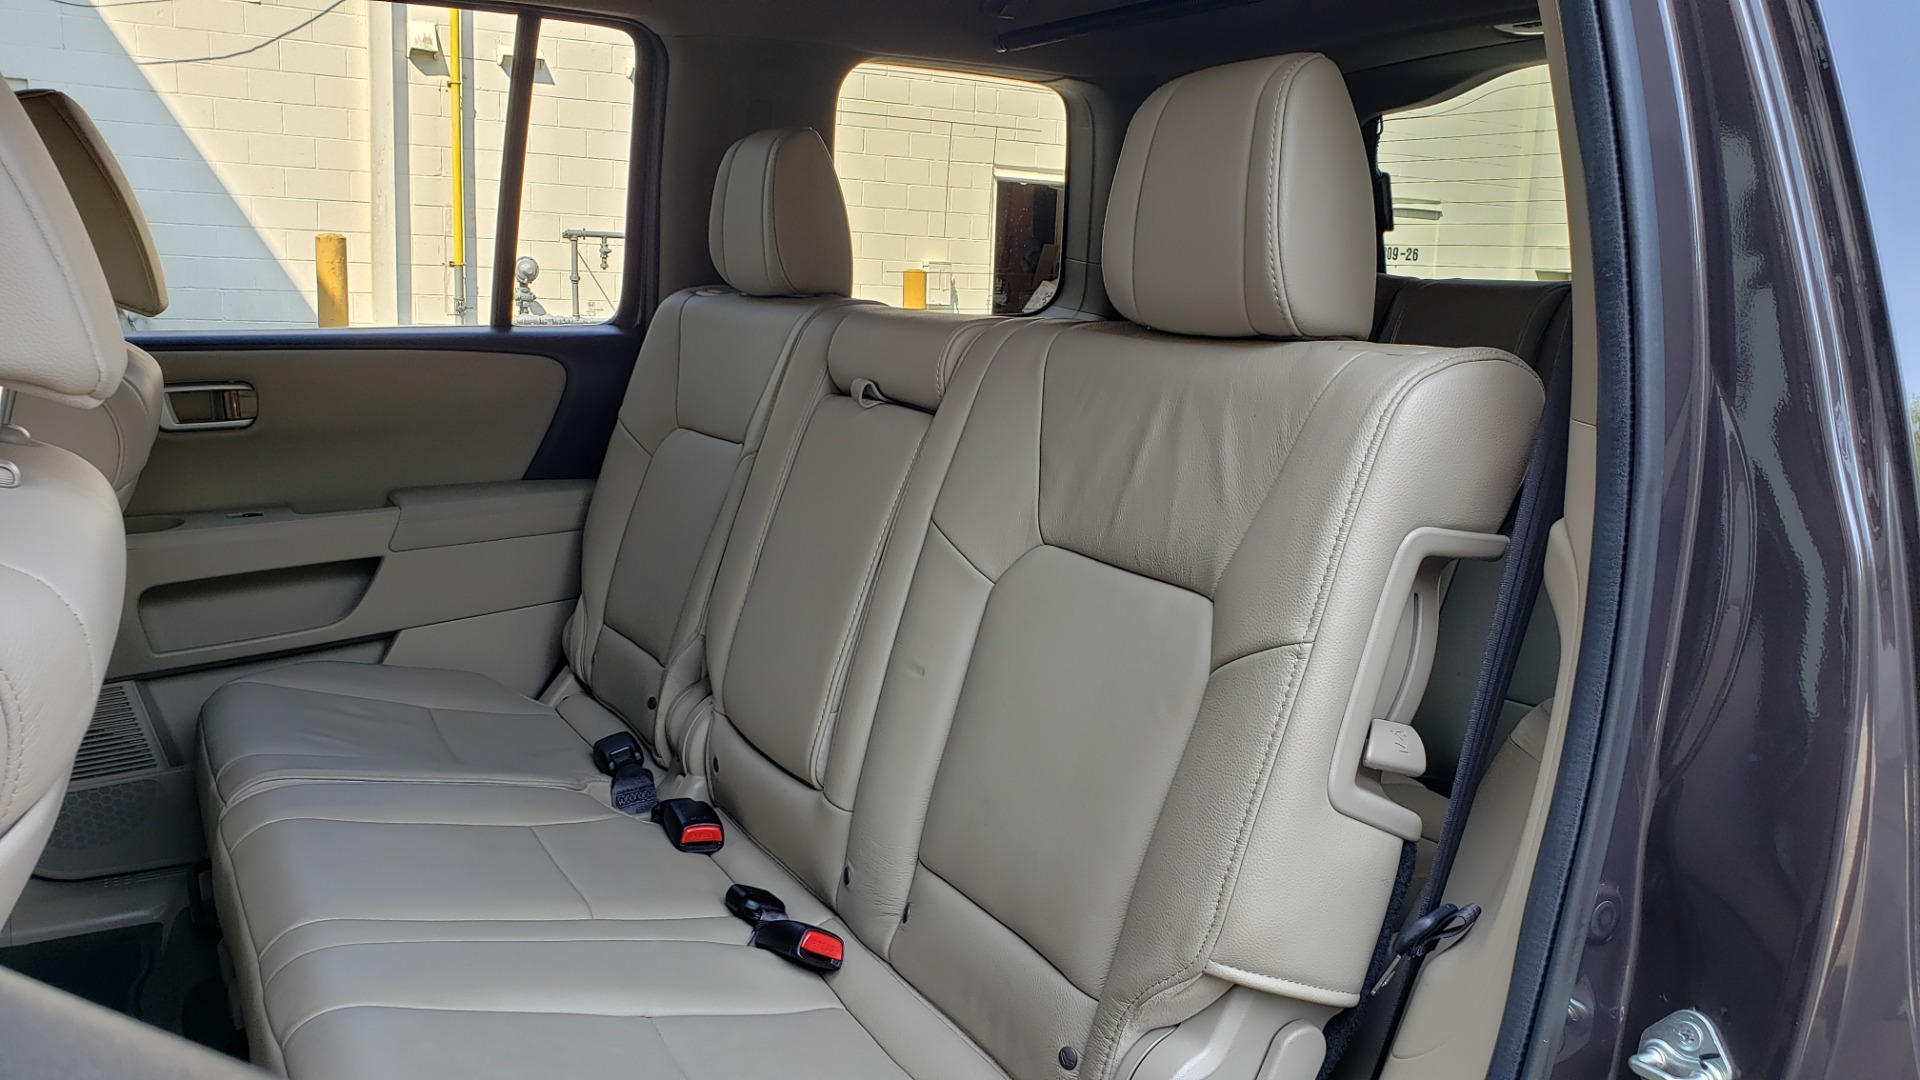 Used 2014 Honda PILOT EX-L / SUNROOF / HTD STS / DUAL-ZONE CLIMATE / REARVIEW for sale $16,995 at Formula Imports in Charlotte NC 28227 60